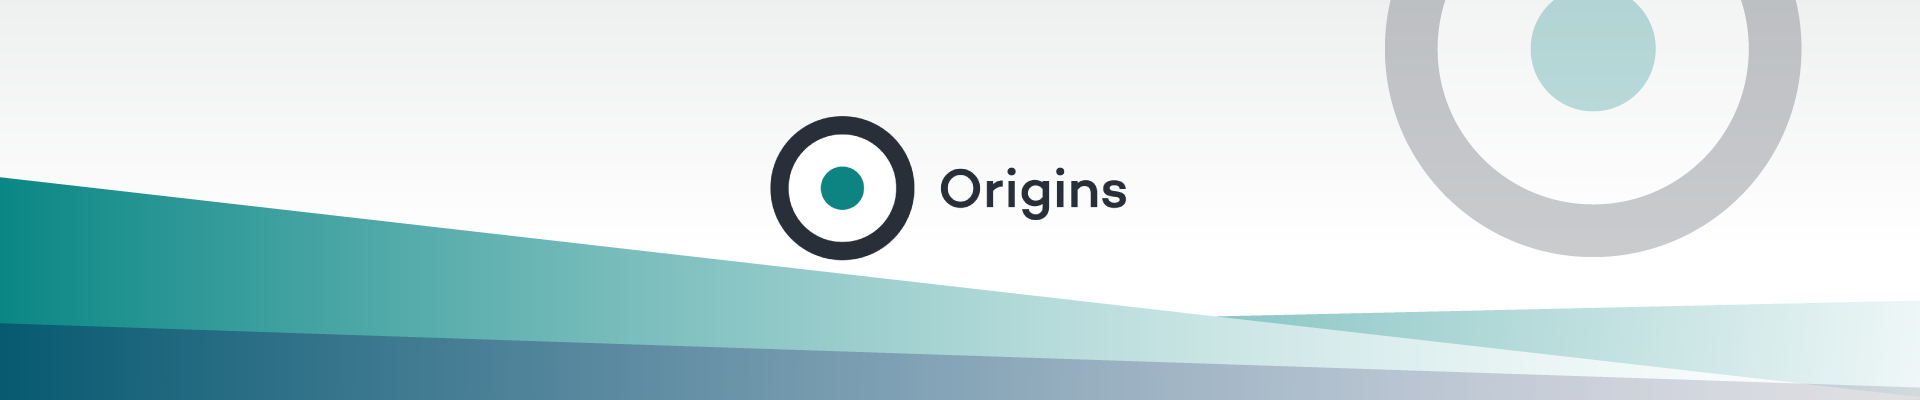 Origins Software Header Image